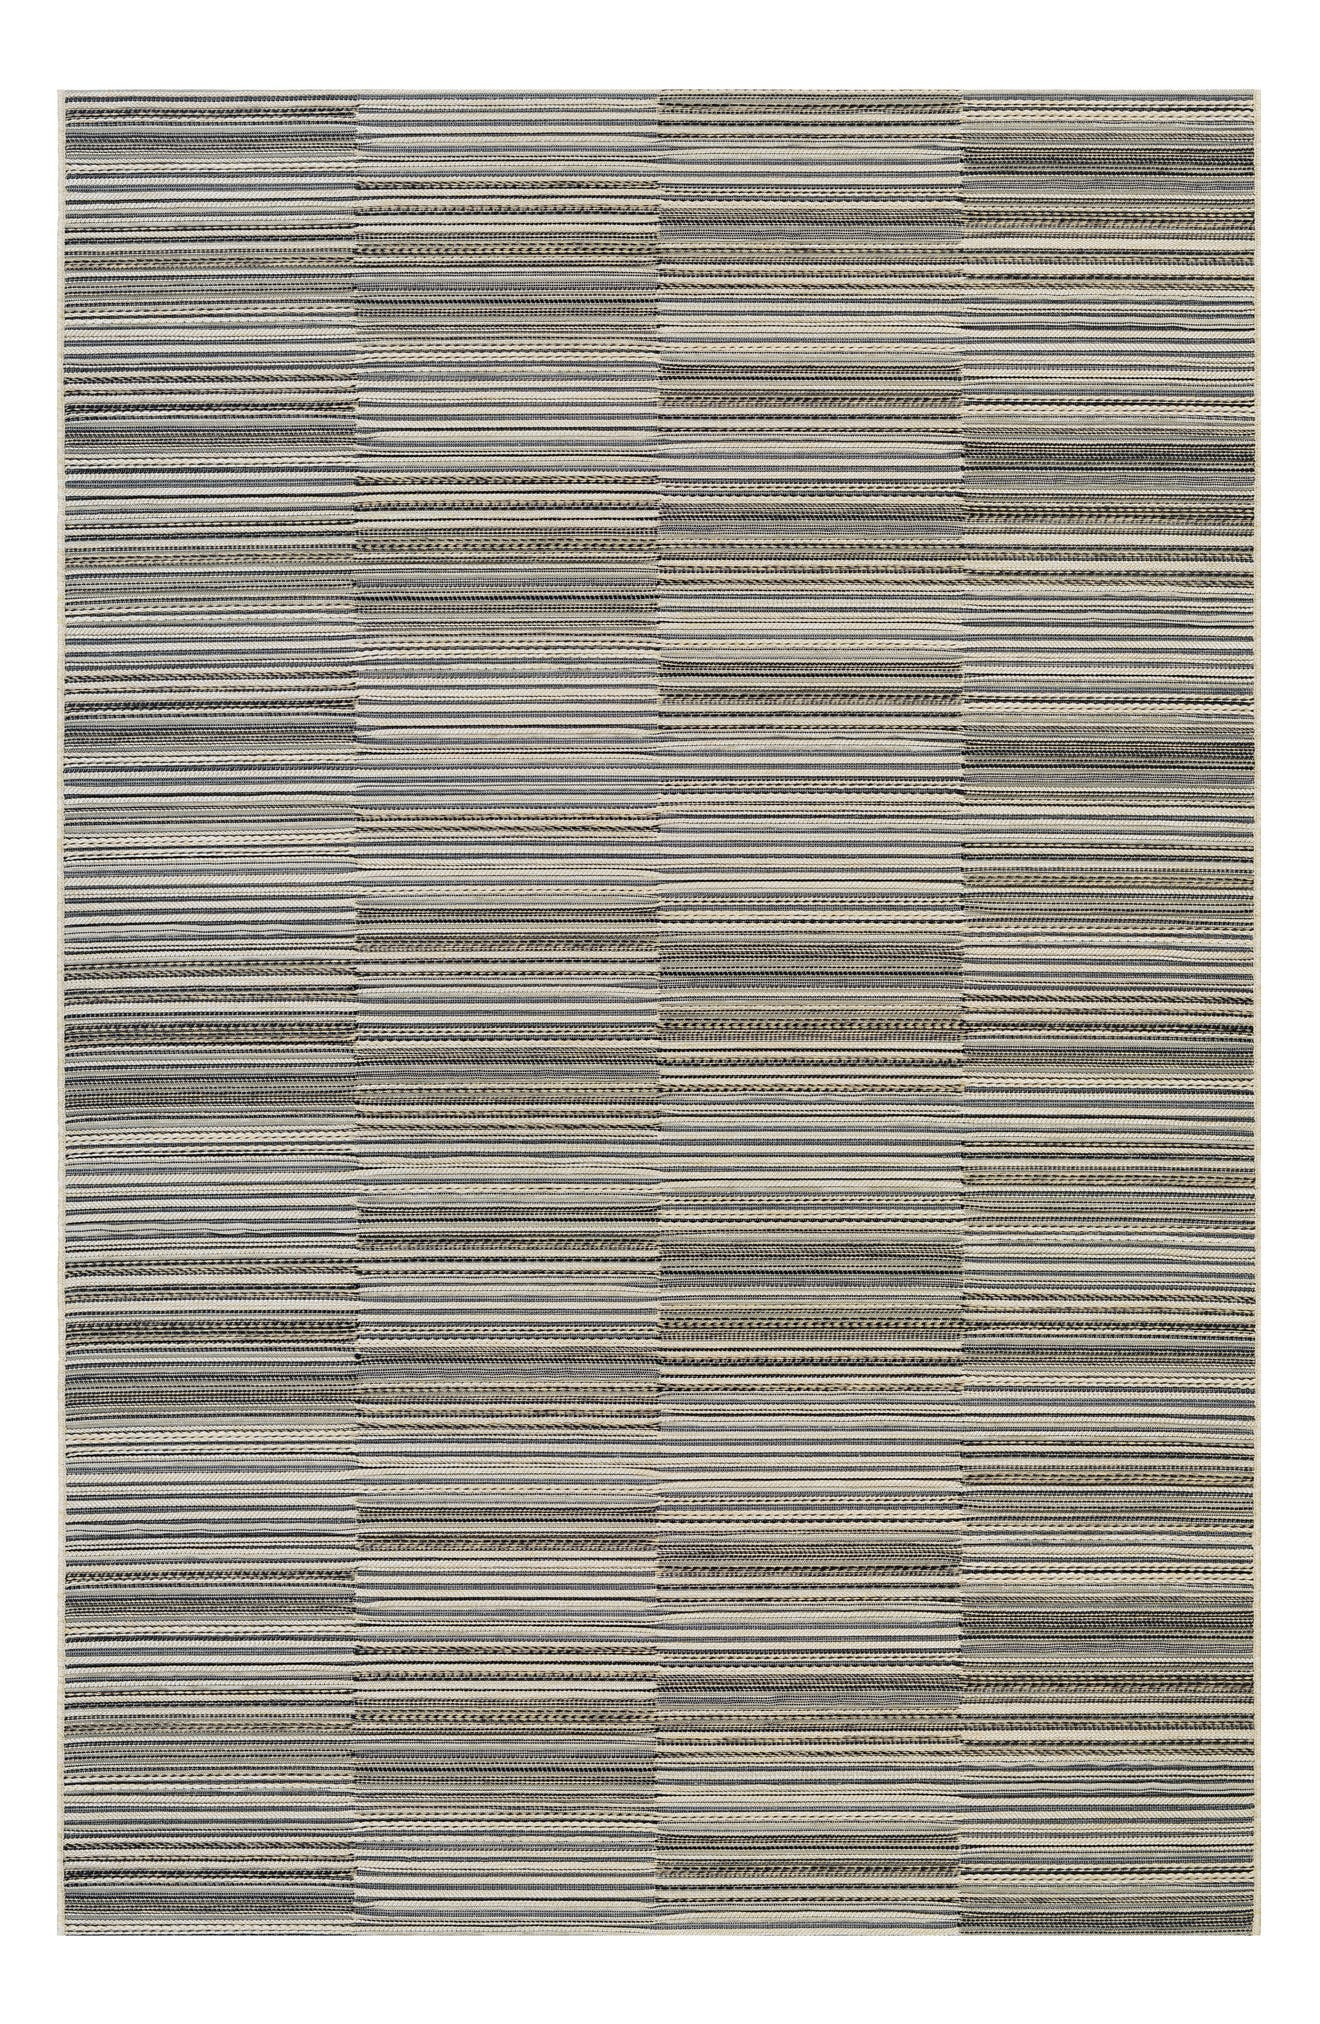 Hyannis Indoor/Outdoor Rug,                             Main thumbnail 1, color,                             001